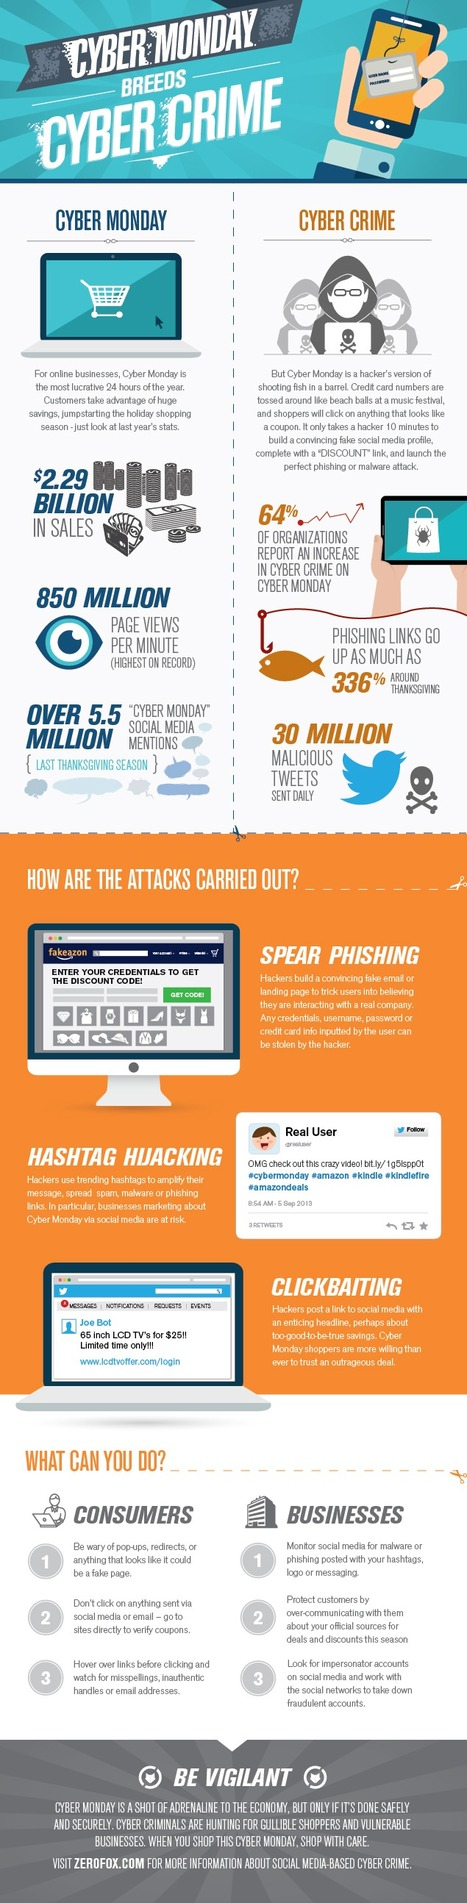 How hackers are stealing this Cyber Monday (Infographic) | CyberSecurity | Phishing | ICT lessons | Scoop.it